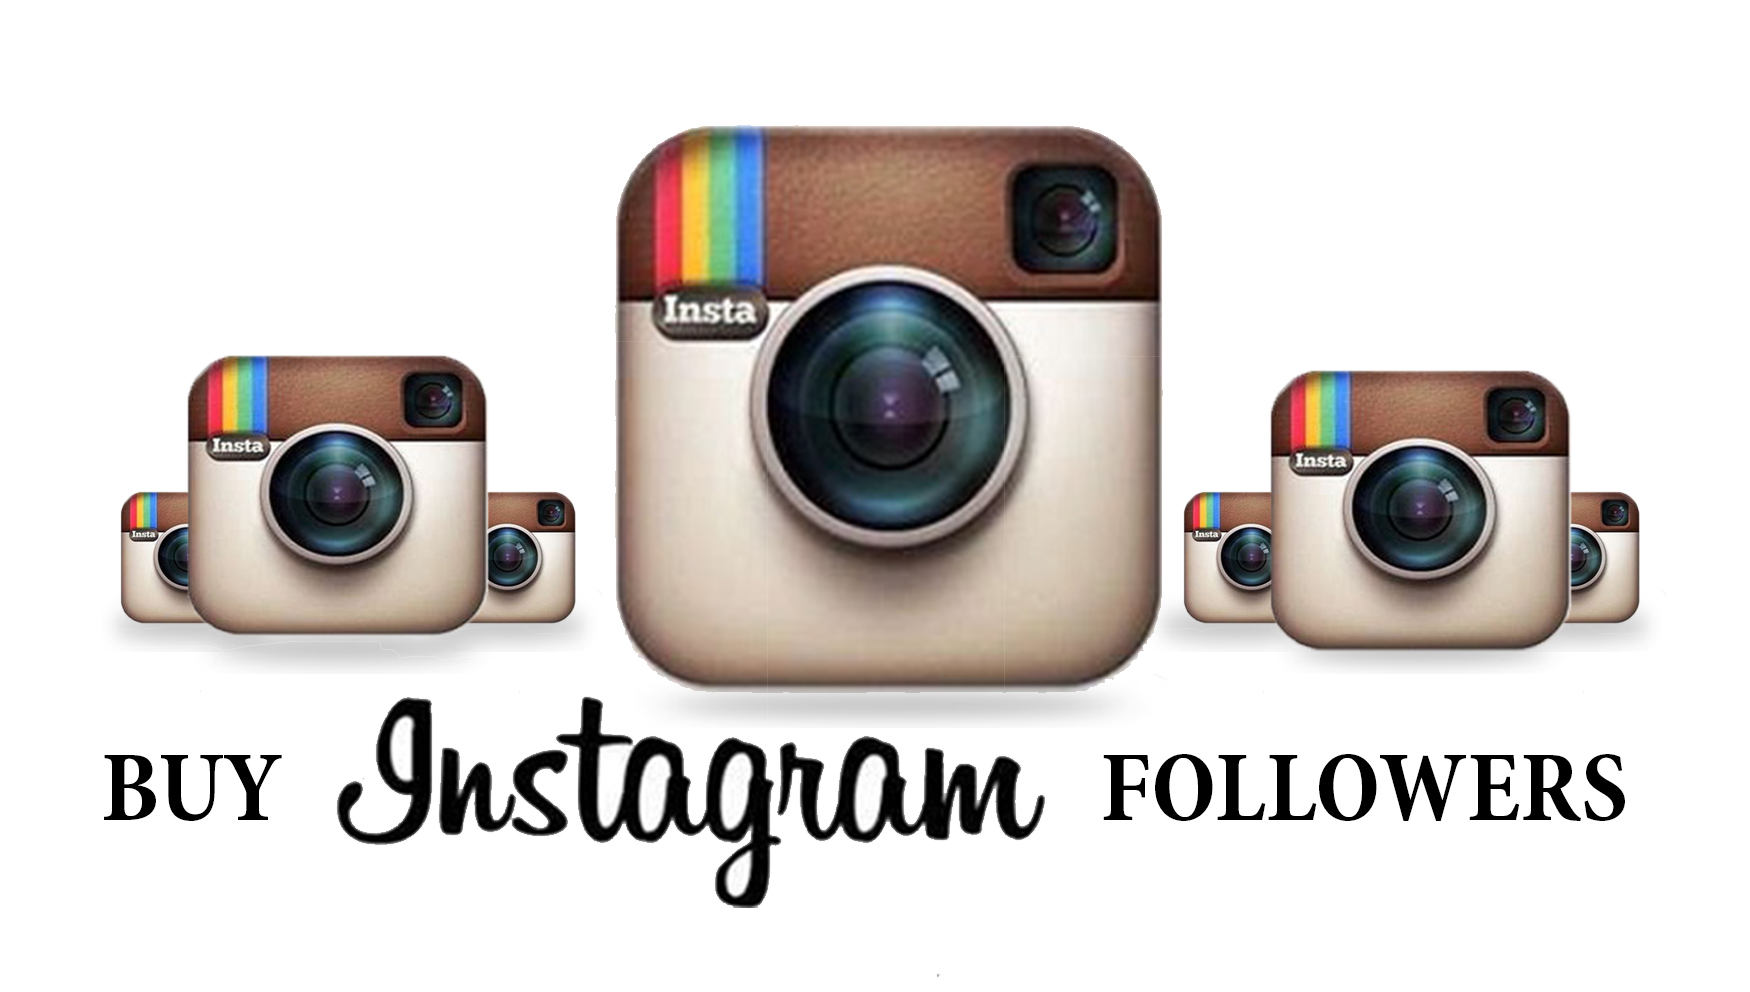 Buy Instagram Followers Nigeria